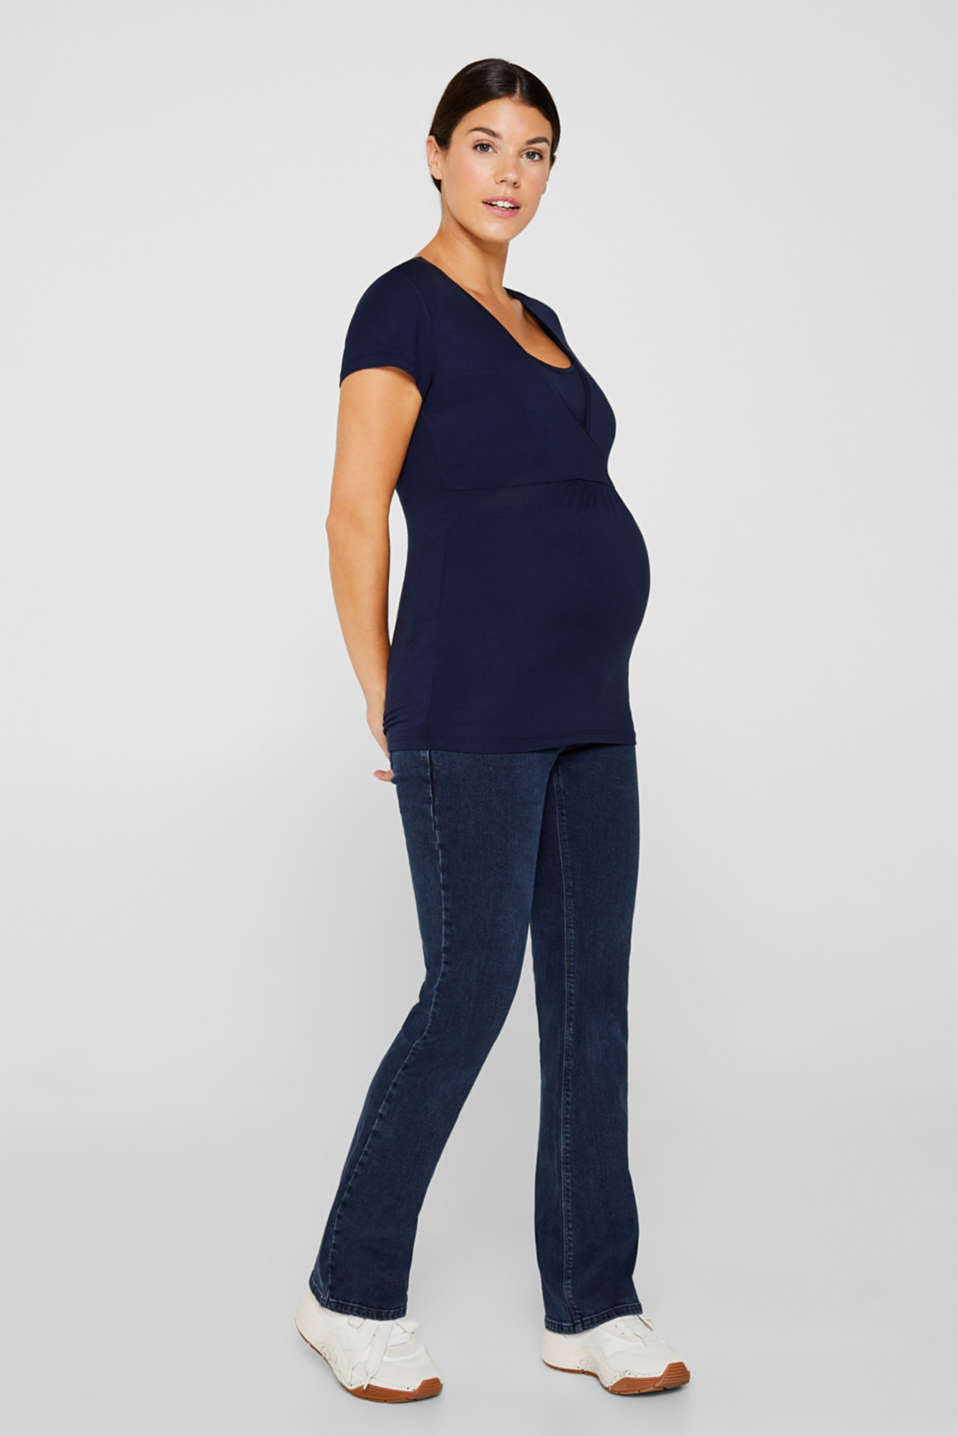 Flowing stretch nursing top